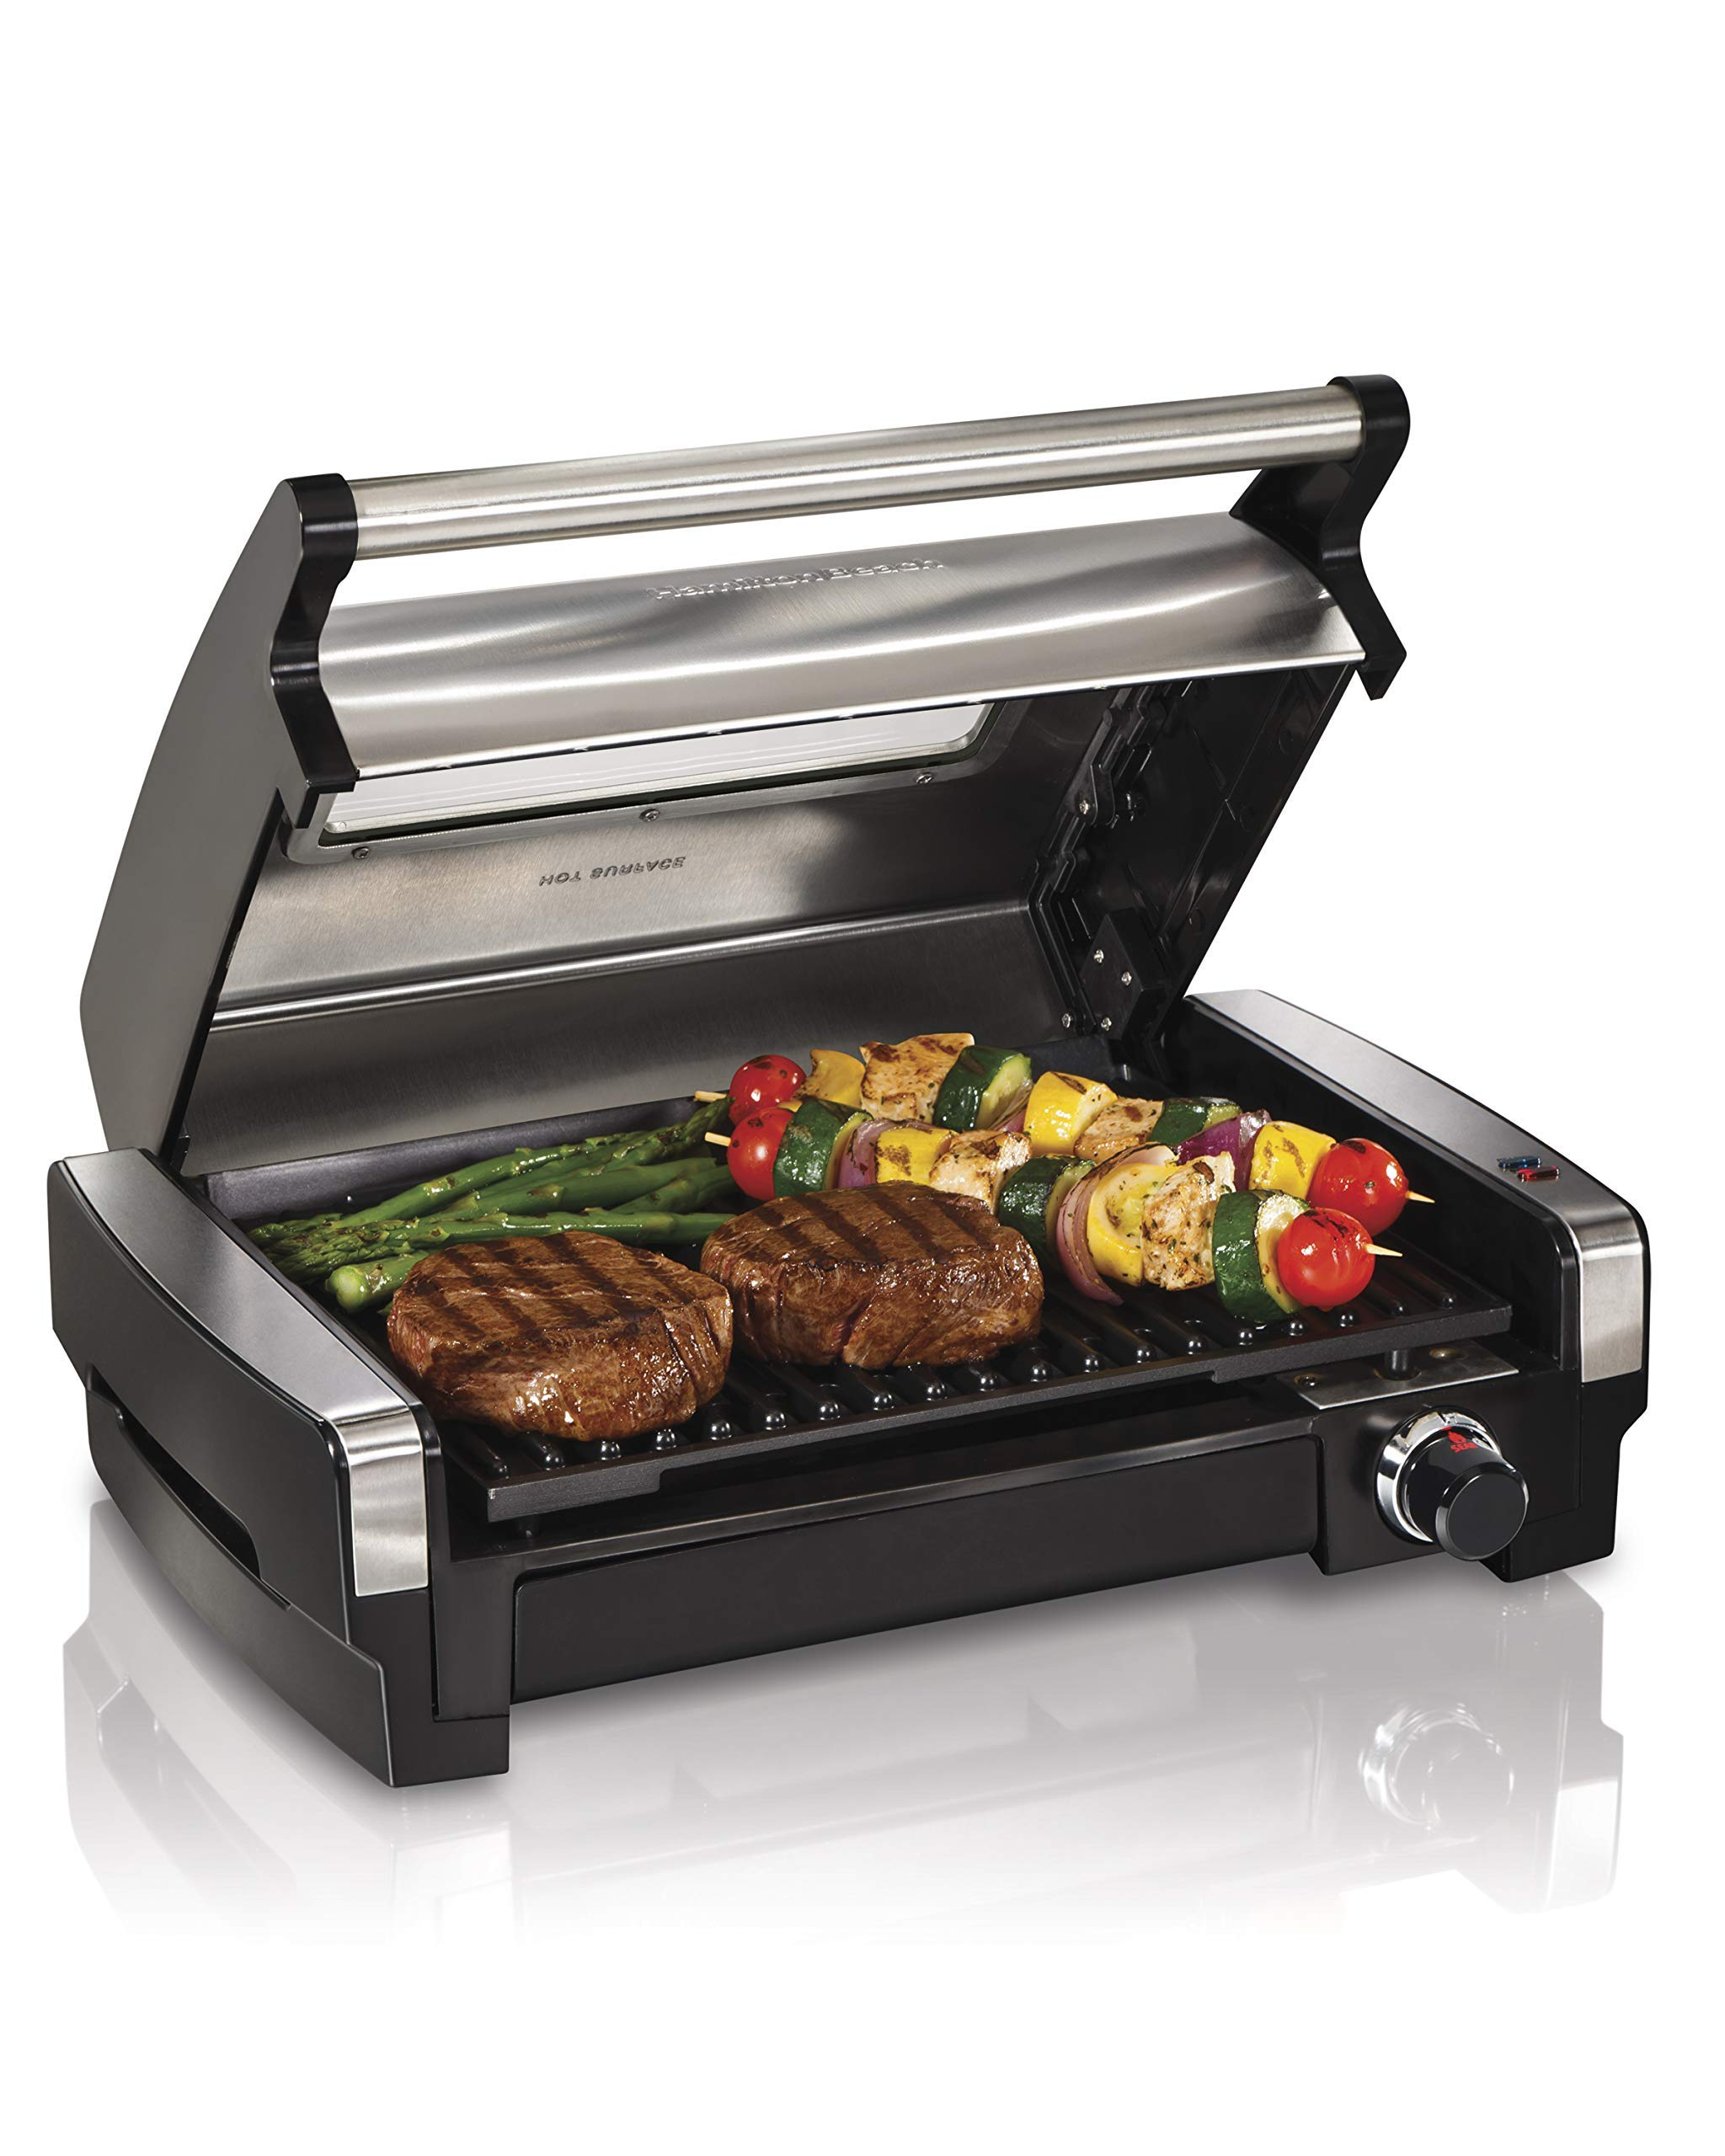 Hamilton Beach 25361 Electric Indoor Searing Grill with Removable Easy-to-Clean Nonstick Plate, Viewing Window, Stainless Steel (Renewed) by Hamilton Beach